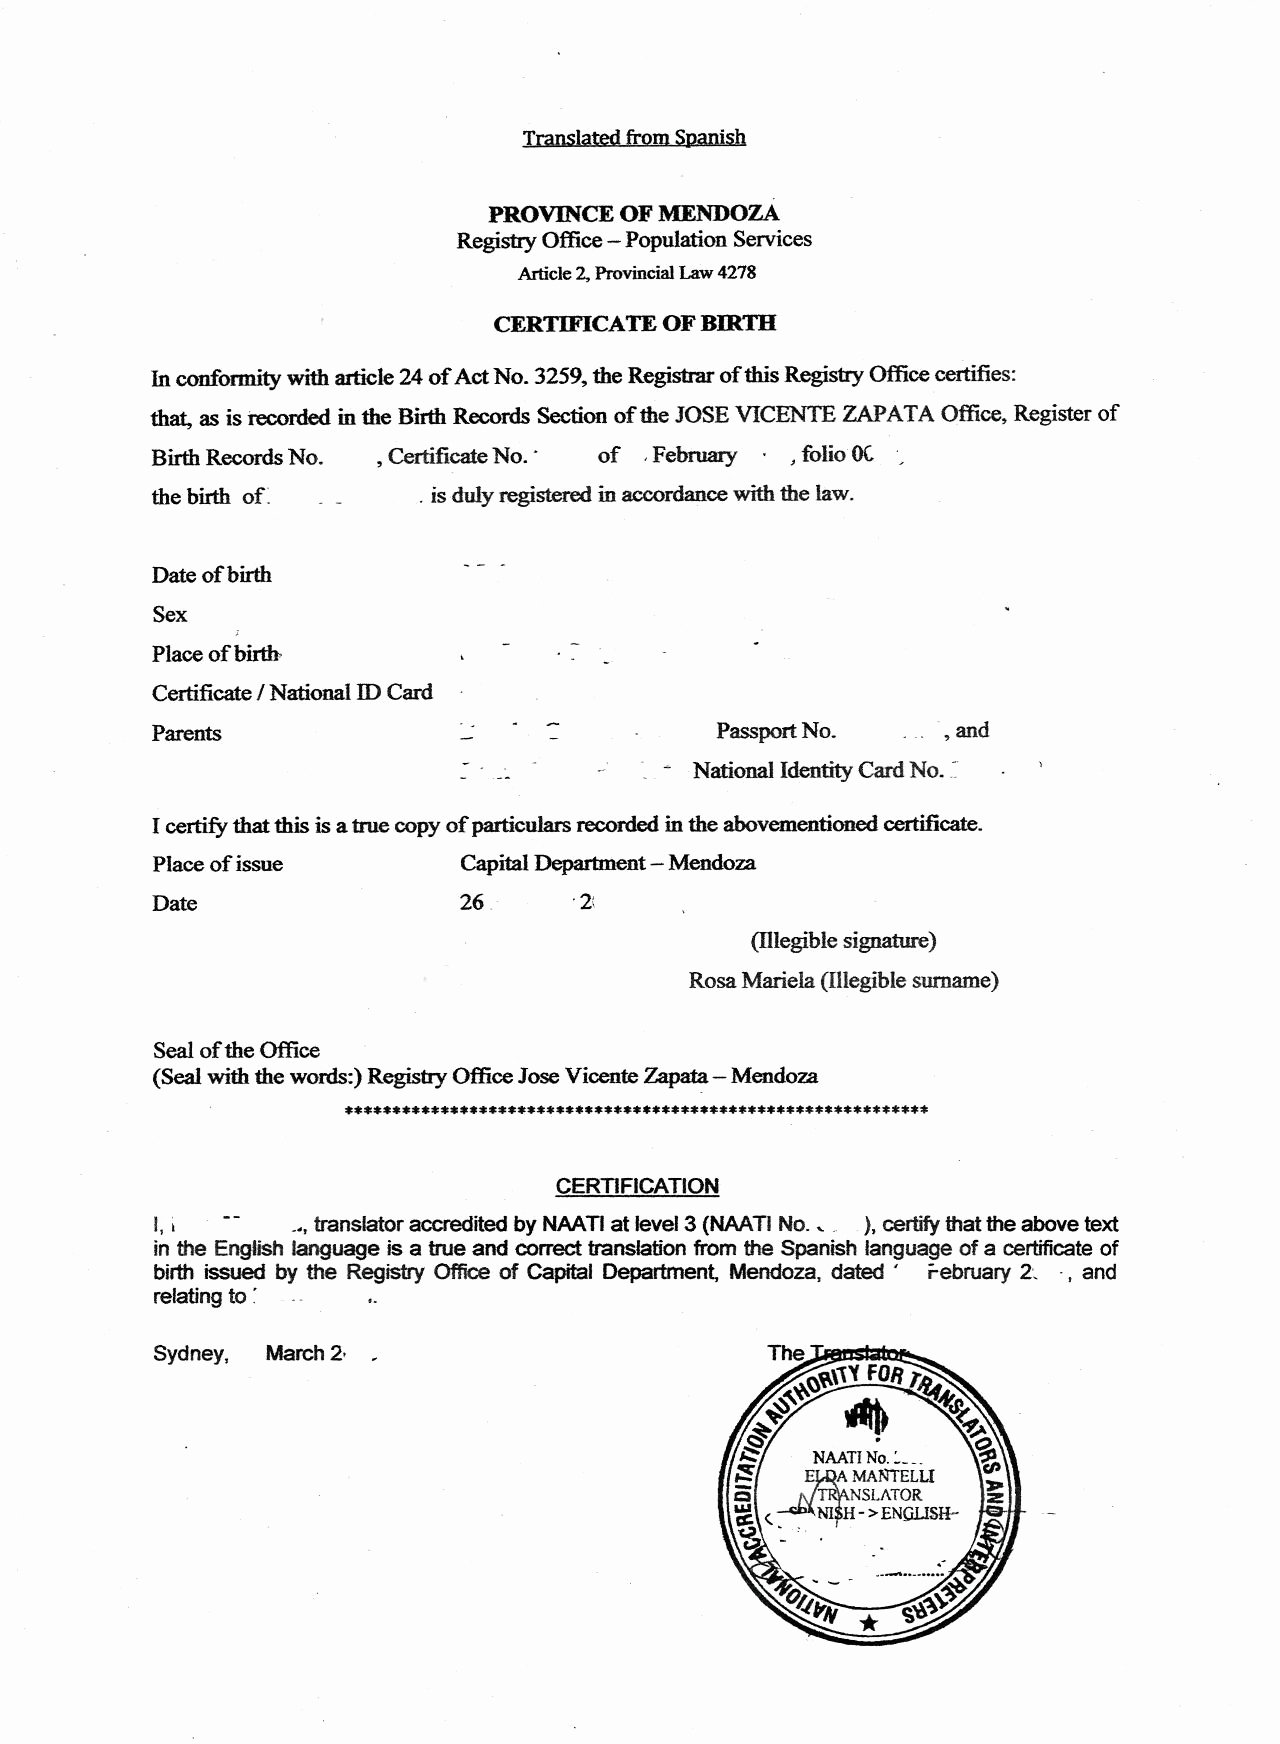 Marriage Certificate Translation From Spanish to English Template Luxury Certificate Templates 10 Best Of Mexican Marriage